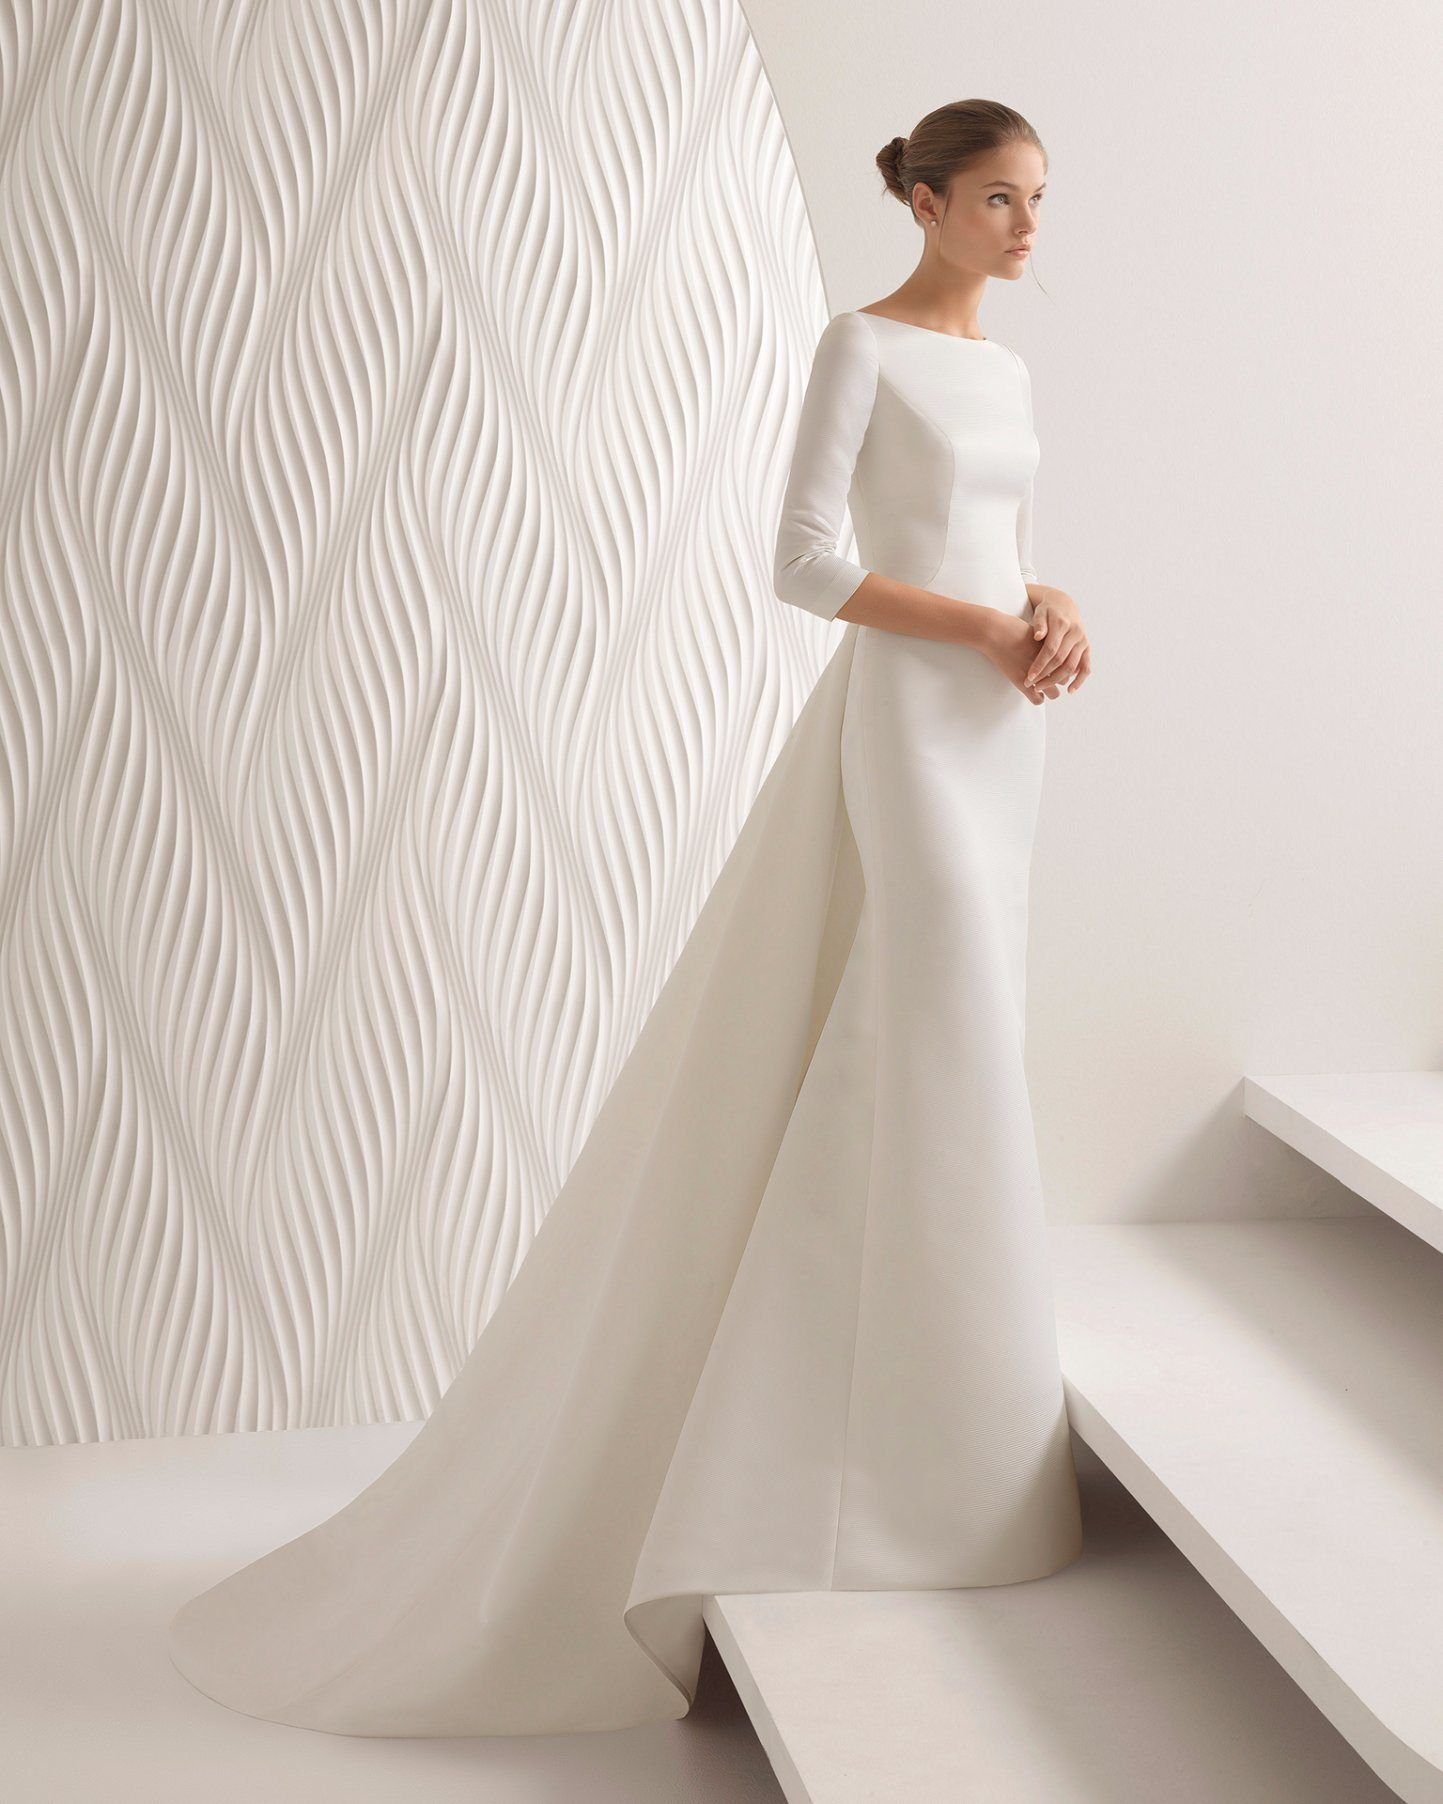 Hot Item Boat Neck 3 4 Sleeve Hollow Back Removable Train Satin Mermaid Bridal Wedding Dress Minimal Wedding Dress Boat Neck Wedding Dress Wedding Dresses